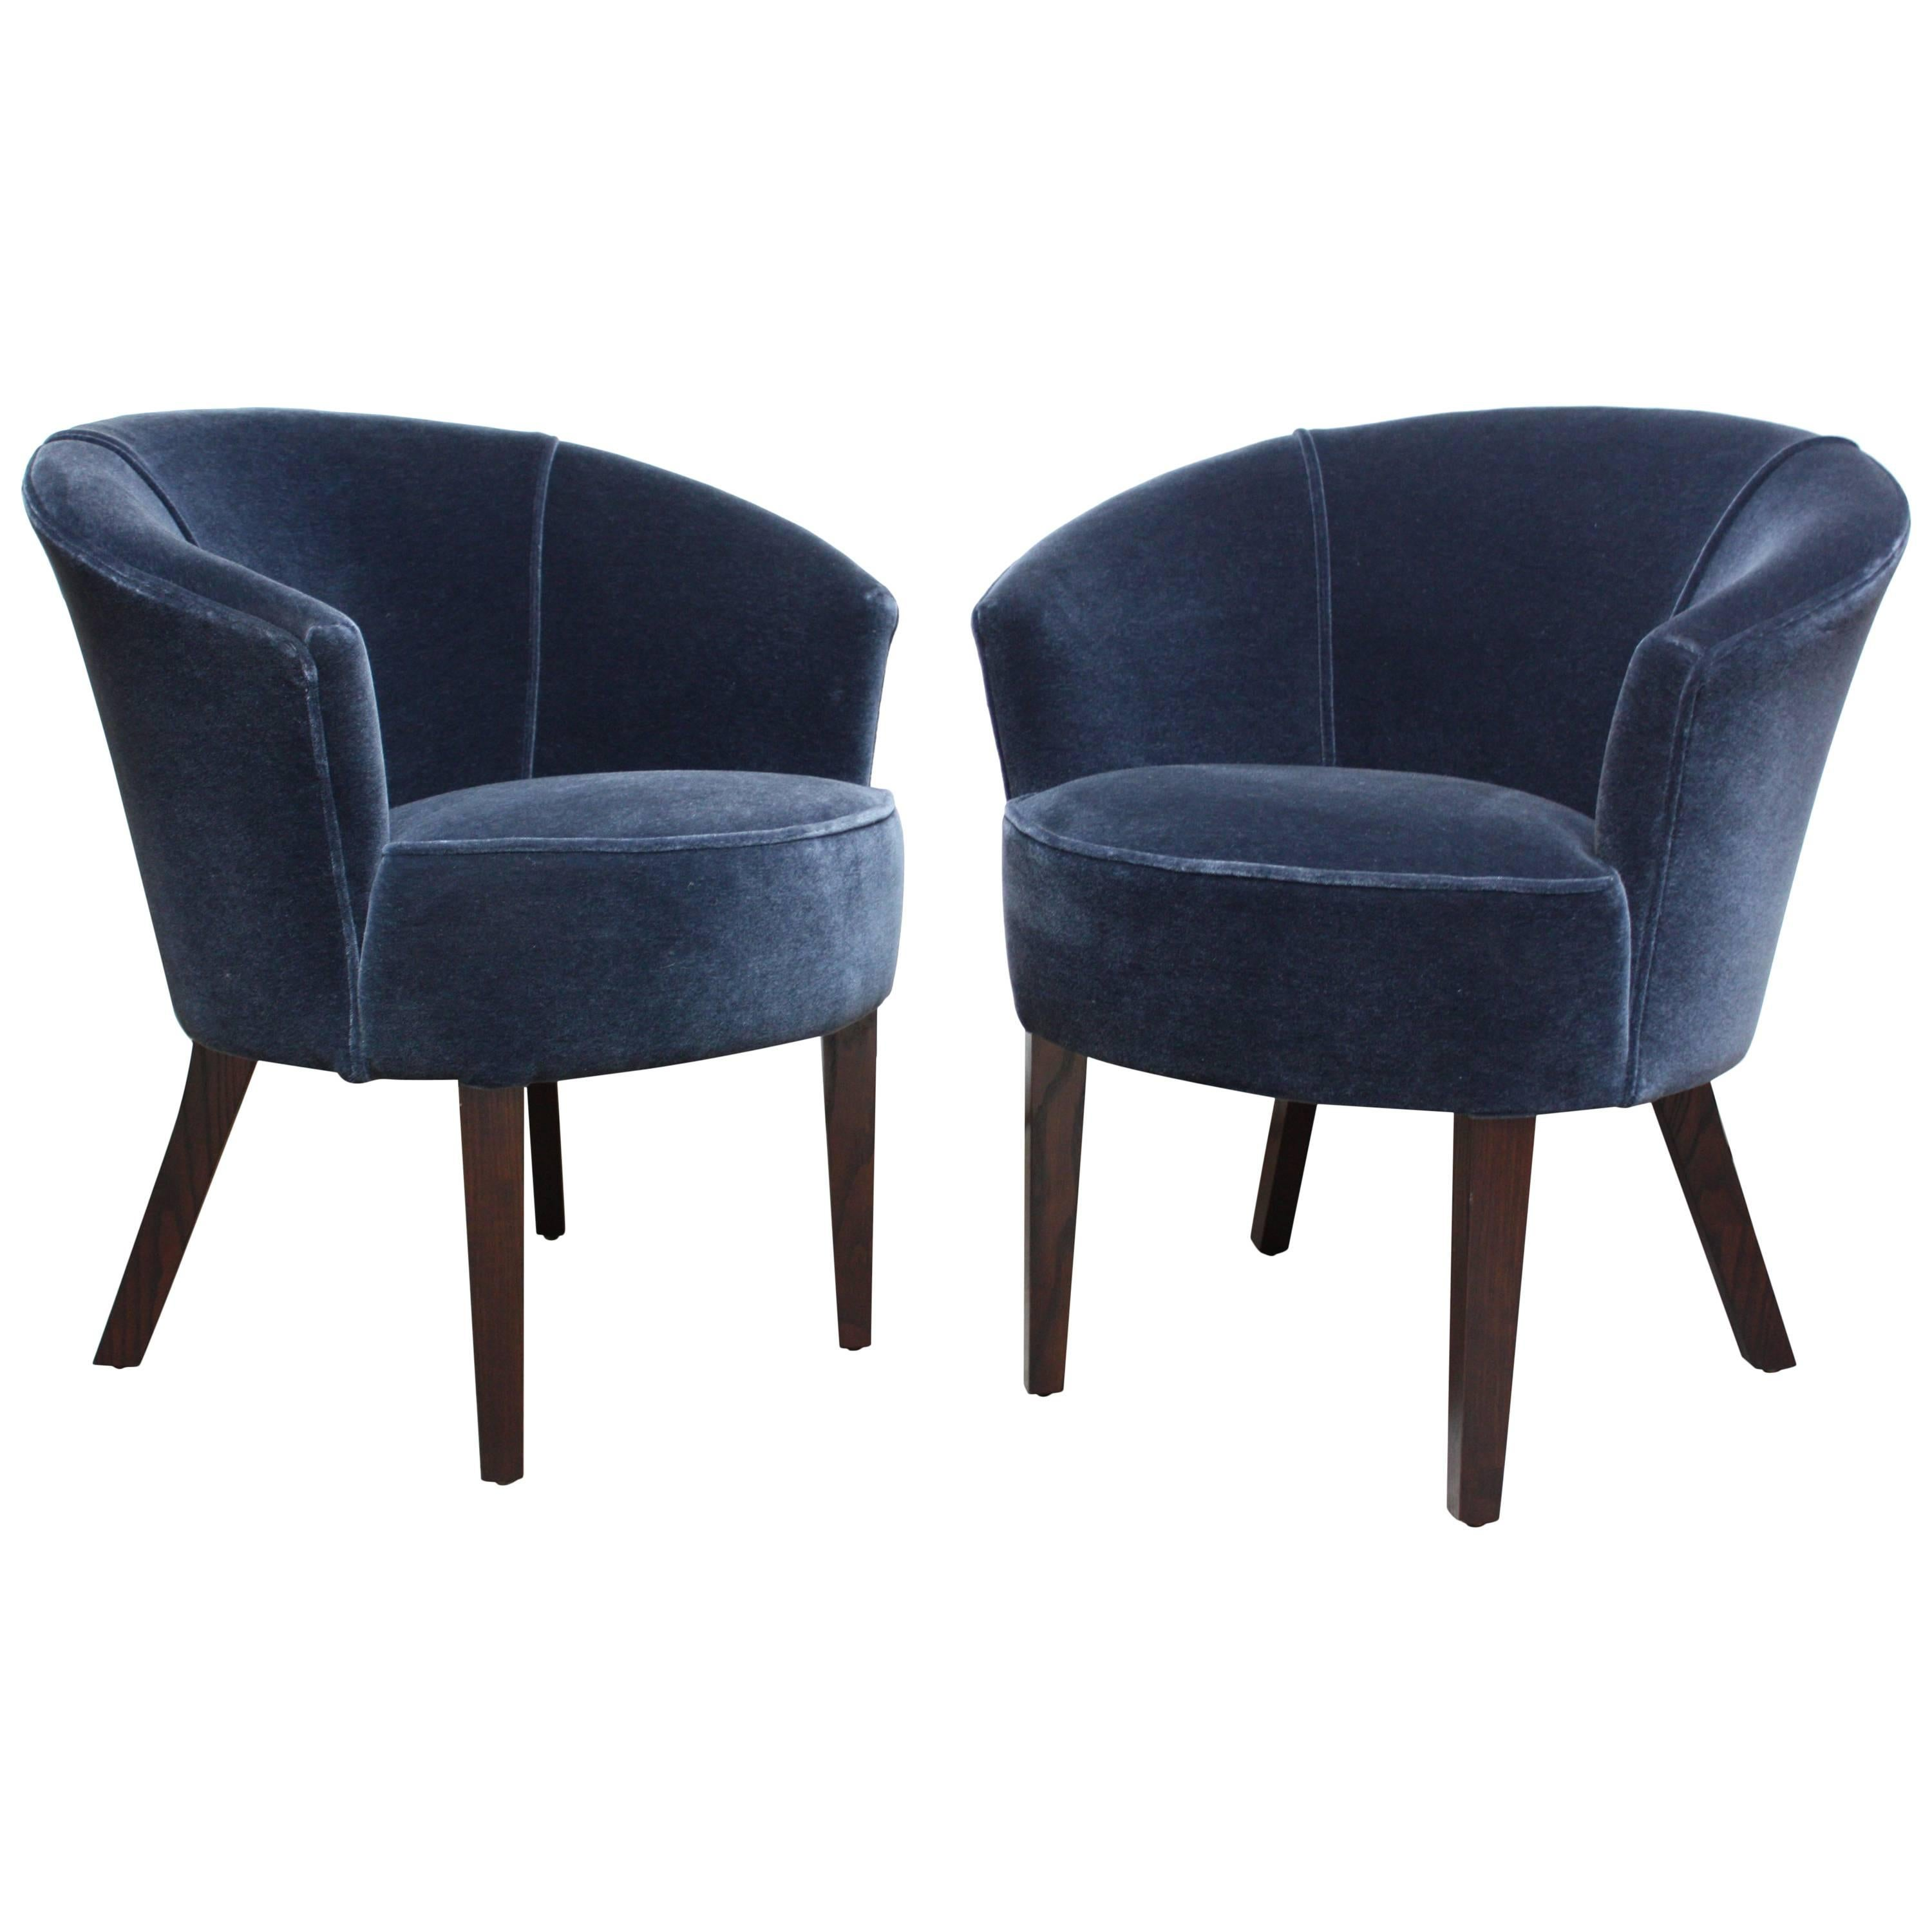 Pair Of English George Smith U0027Petworthu0027 Tub Chairs In Mohair ...